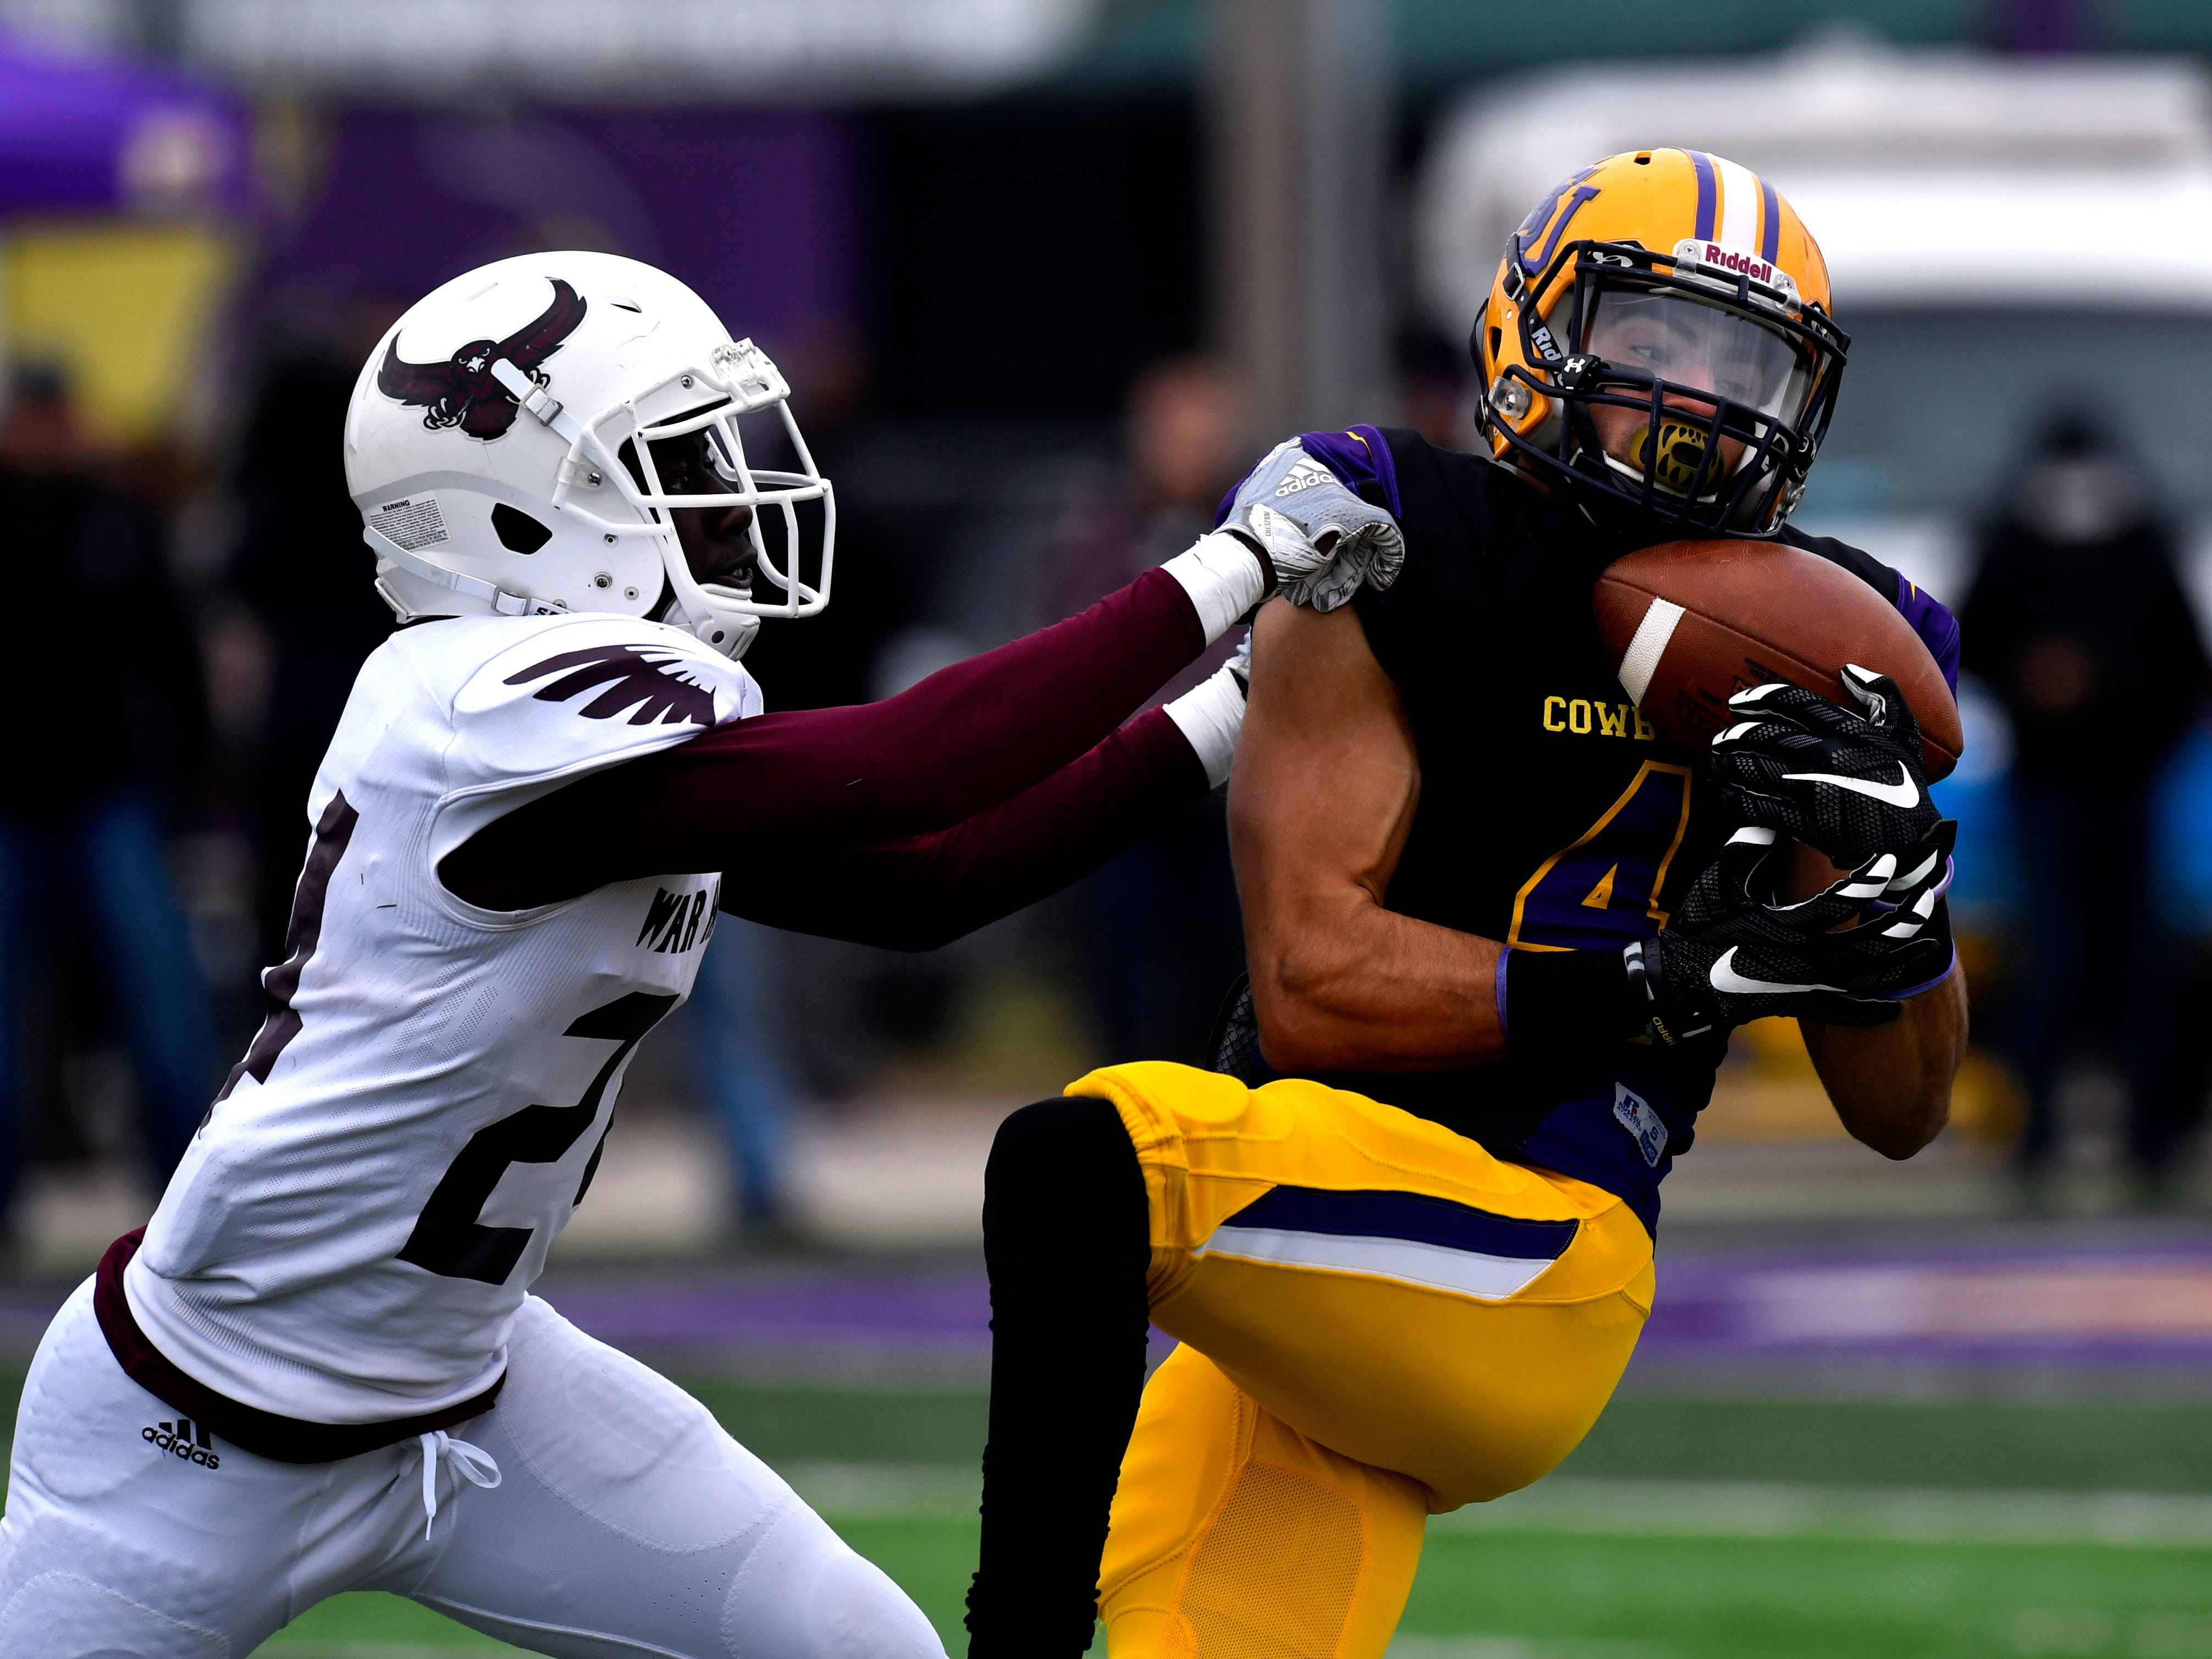 Cowboys wide receiver Matthew Sandoval completes a pass as War Hawks defensive back Edward Coleman, jr. covers him for McMurry University Saturday Nov. 10, 2018. Final score was 83-6, Hardin-Simmons University.